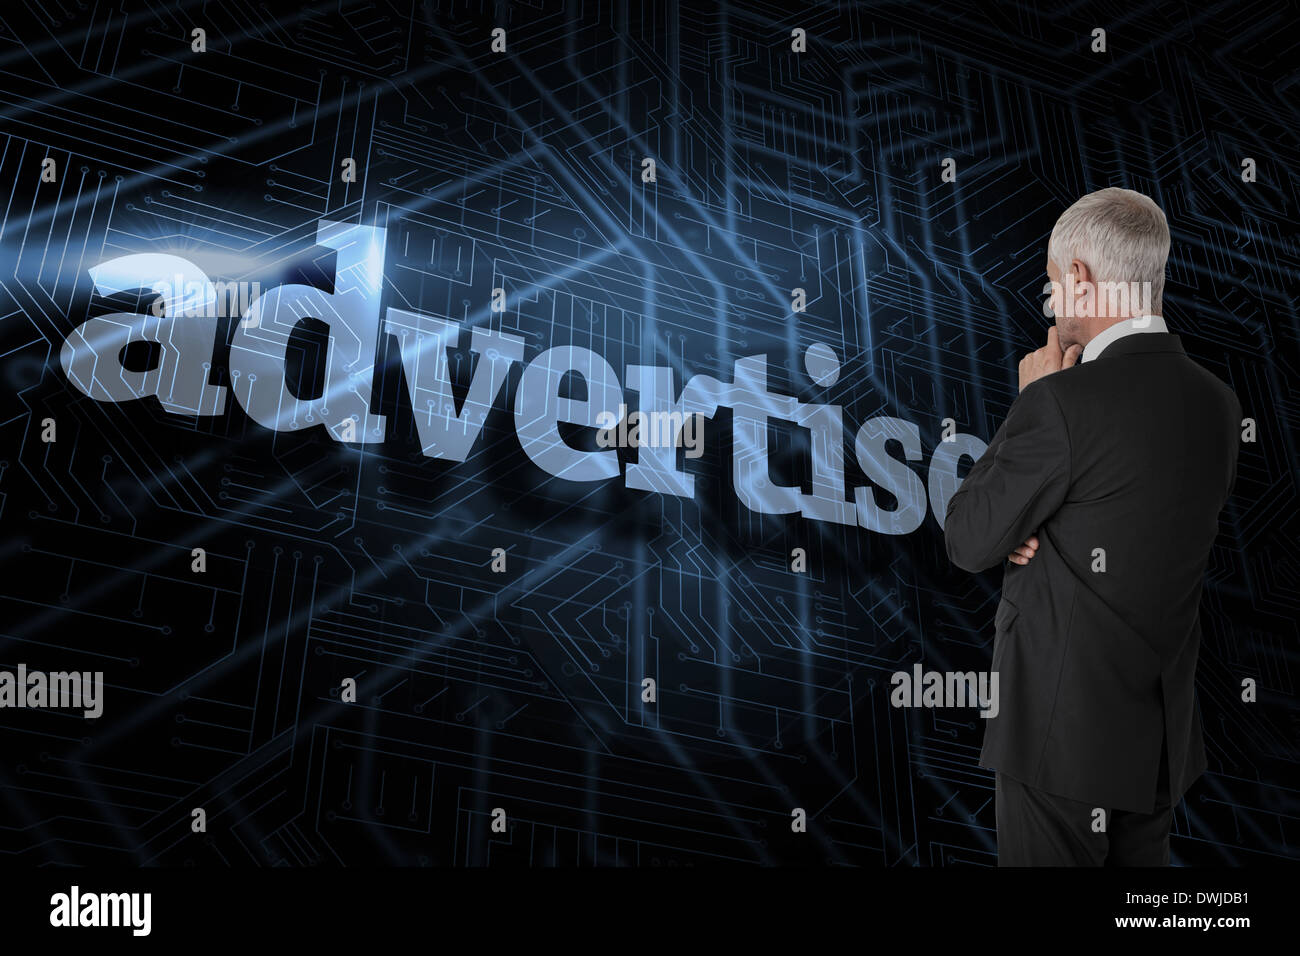 Advertise against futuristic black and blue background - Stock Image